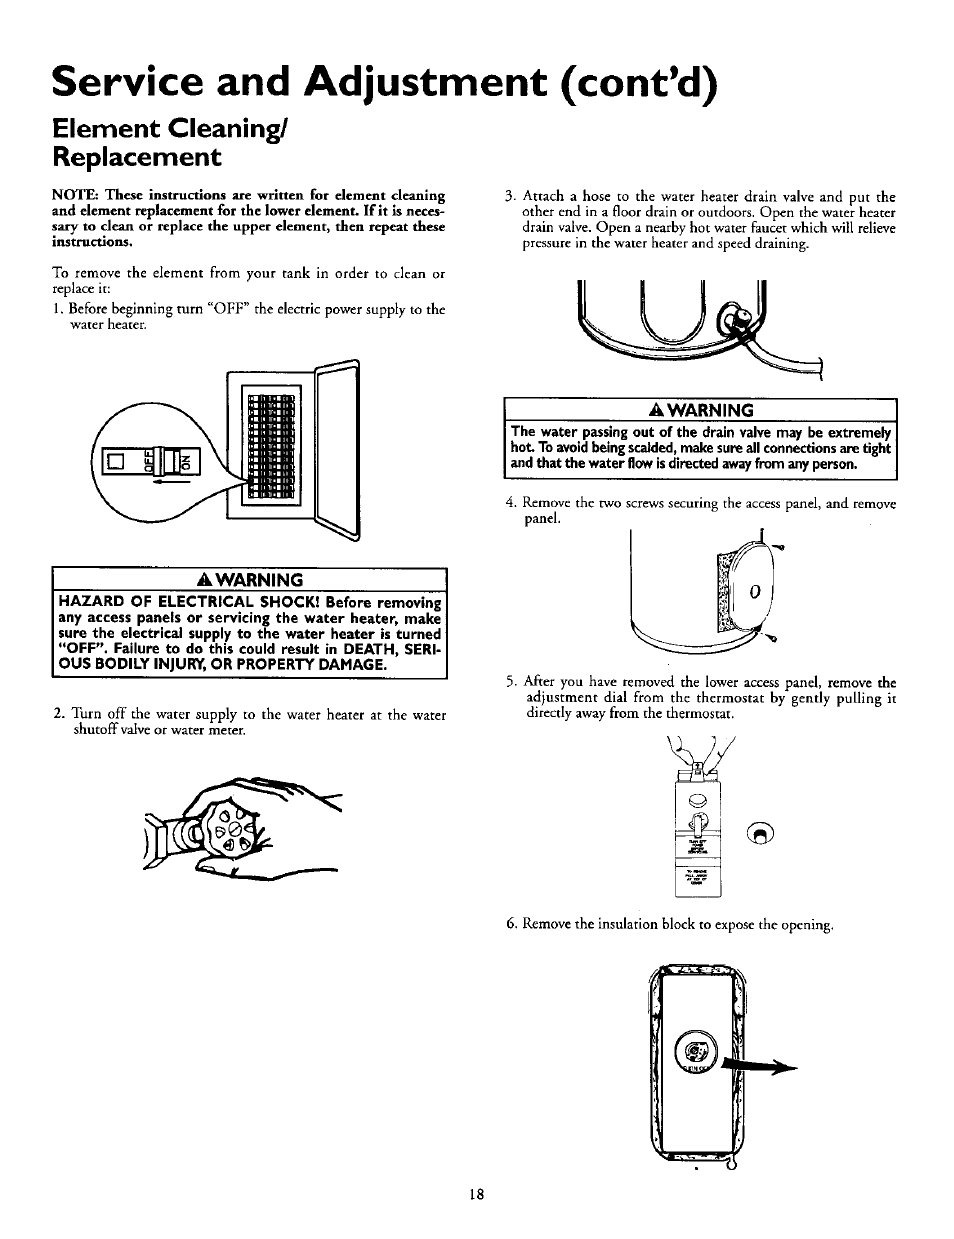 Kenmore Power Miser 12 Electric Hot Water Heater Manual Nemetas Wiring Diagram 8 Element Cleaning Replacement Awarning Service And Adjustment Contd